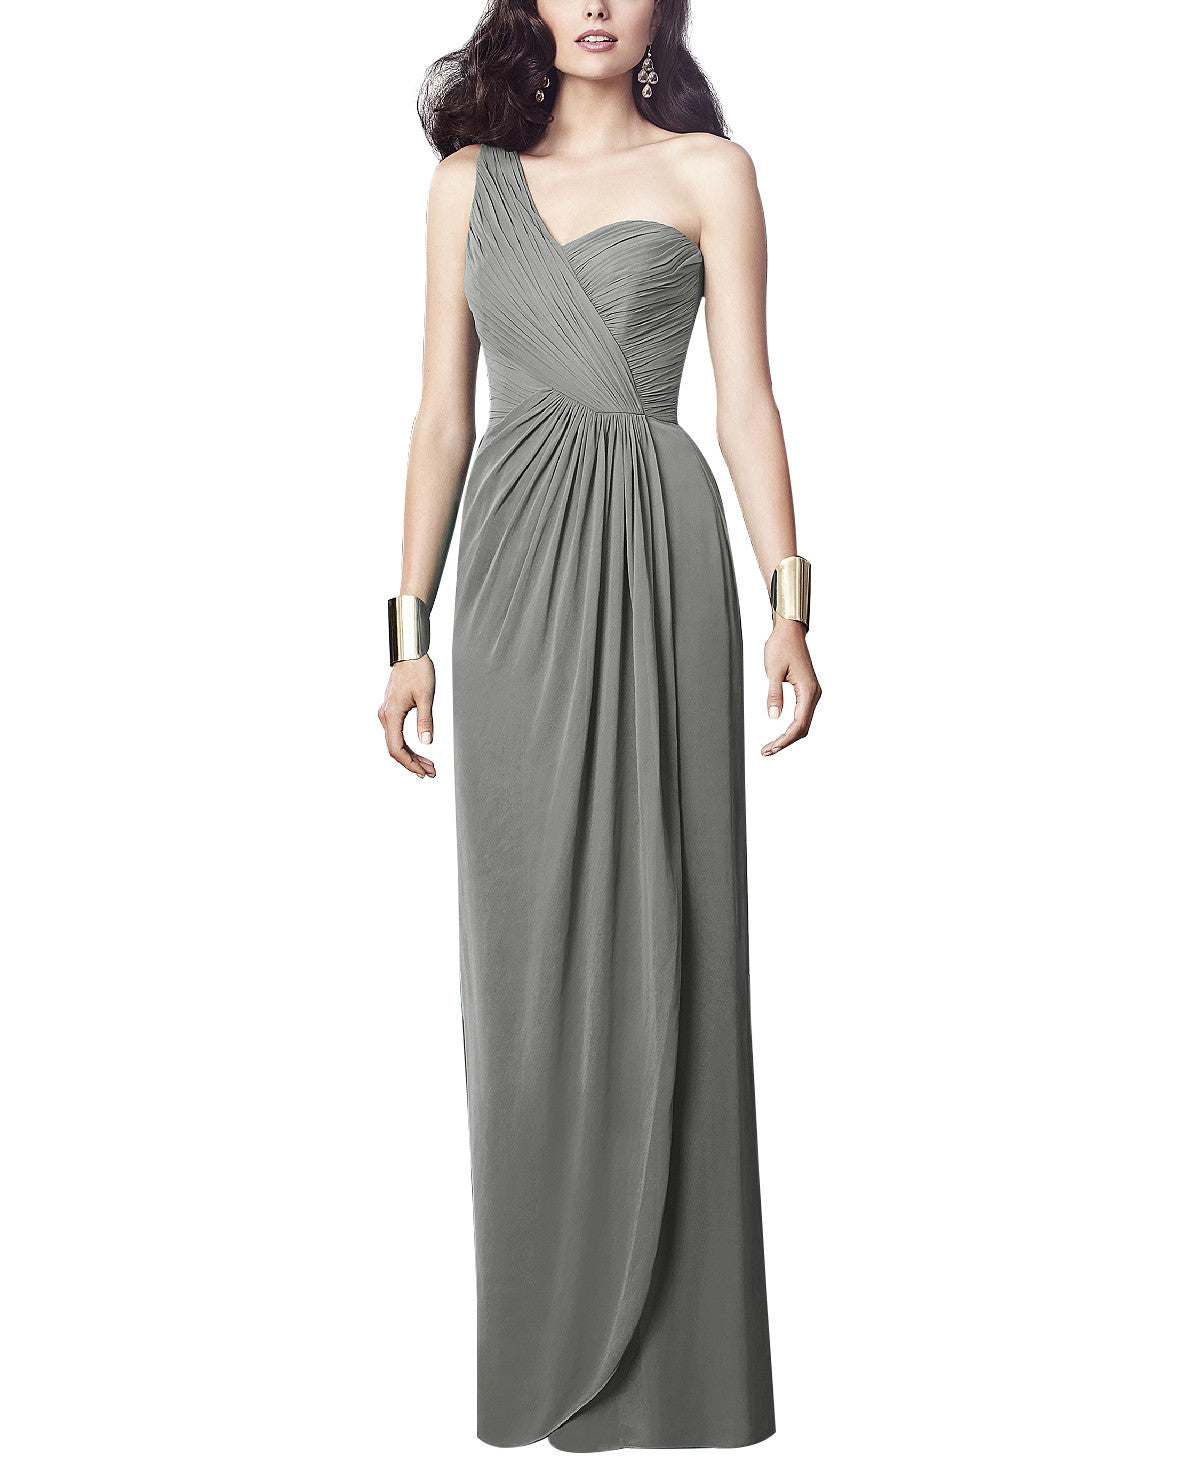 Dessy collection style 2905 bridesmaid dress brideside dessy collection style 2905 ombrellifo Choice Image